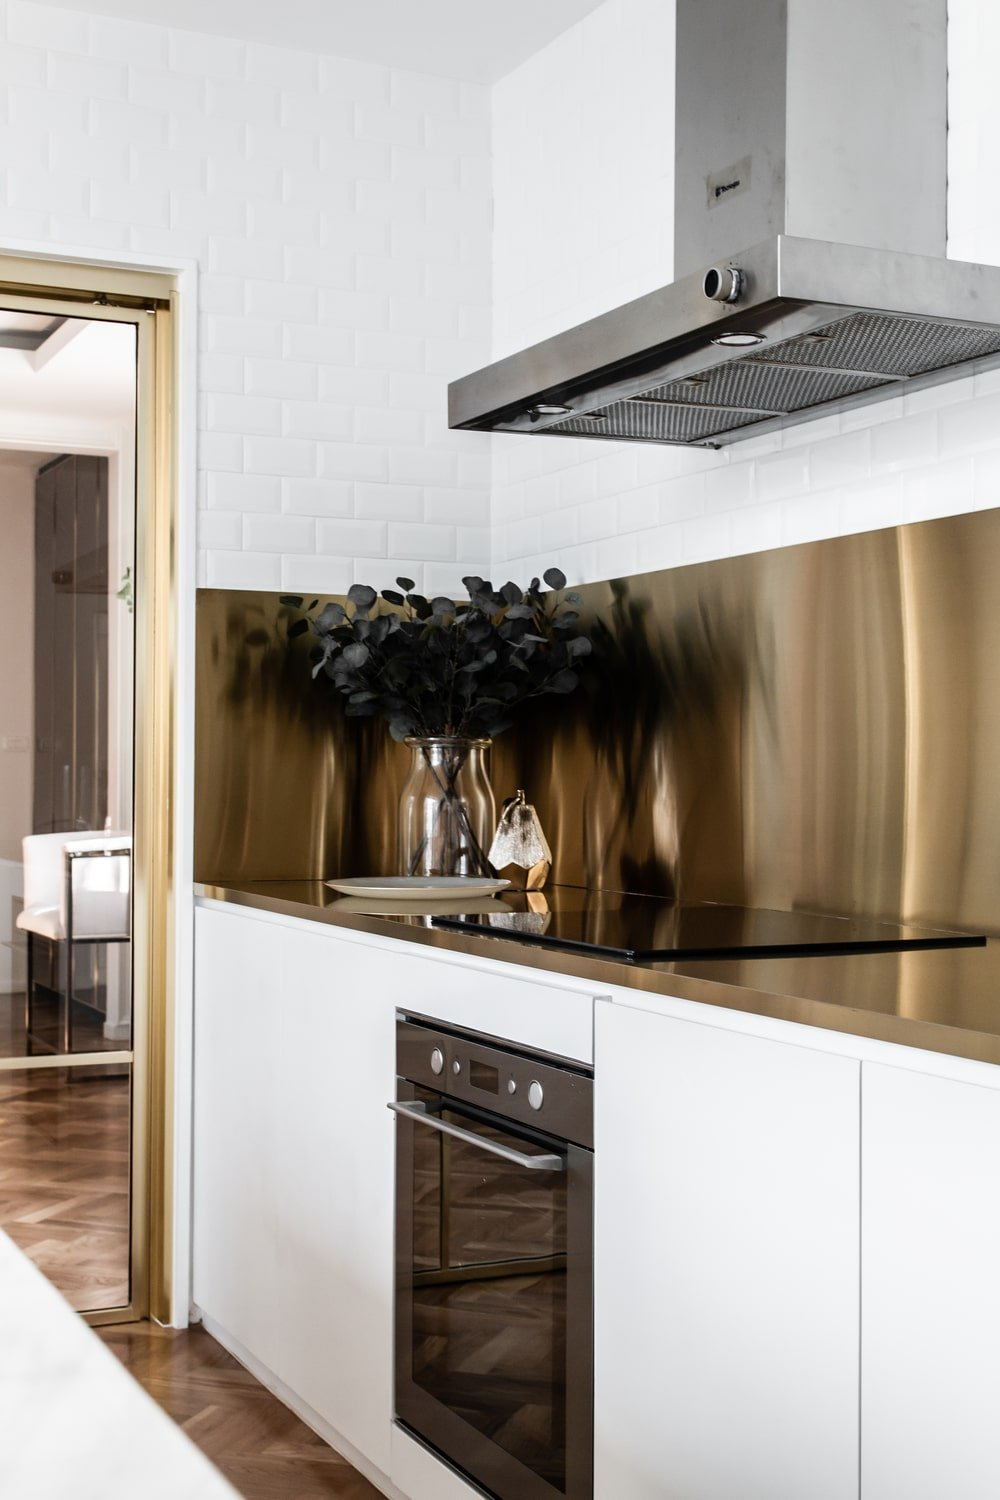 The kitchen counter has a unique look to its white cainetry, golden backsplash and stainless steel vent hood combination.